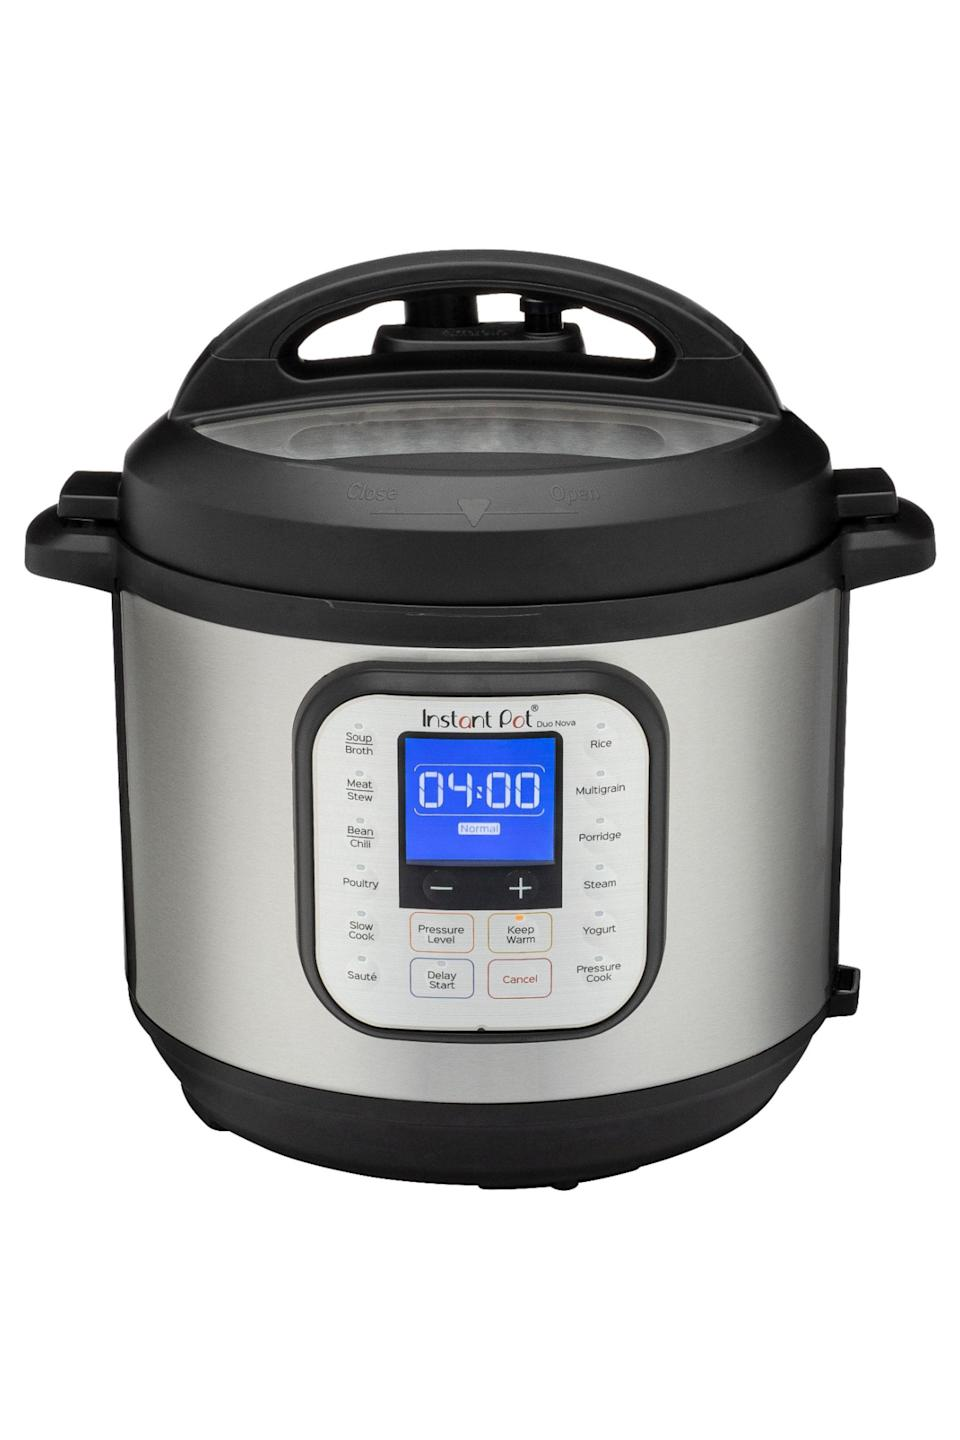 """<p><strong>Instant Pot</strong></p><p>bestbuy.com</p><p><strong>$99.99</strong></p><p><a href=""""https://go.redirectingat.com?id=74968X1596630&url=https%3A%2F%2Fwww.bestbuy.com%2Fsite%2Finstant-pot-duo-nova-6-quart-7-in-1-one-touch-multi-cooker-silver%2F6368023.p%3FskuId%3D6368023&sref=https%3A%2F%2Fwww.elle.com%2Ffashion%2Fg28509176%2Fcozy-gift-guide%2F"""" rel=""""nofollow noopener"""" target=""""_blank"""" data-ylk=""""slk:Shop Now"""" class=""""link rapid-noclick-resp"""">Shop Now</a></p><p>""""I don't really cook (but my bf does) so I couldn't be happier that I nudged him to buy an Instant Pot during last year's Black Friday. I tell people that you won't really get what it's for until you start using it—then you'll want to use it every day. We've made Korean short ribs, carnitas tacos, white bean soup and so much more all in no time at all. Cooking and sitting down for a meal together every night has been such an unexpected source of joy!""""– Katherine Krueger, Digital Features Editor</p>"""